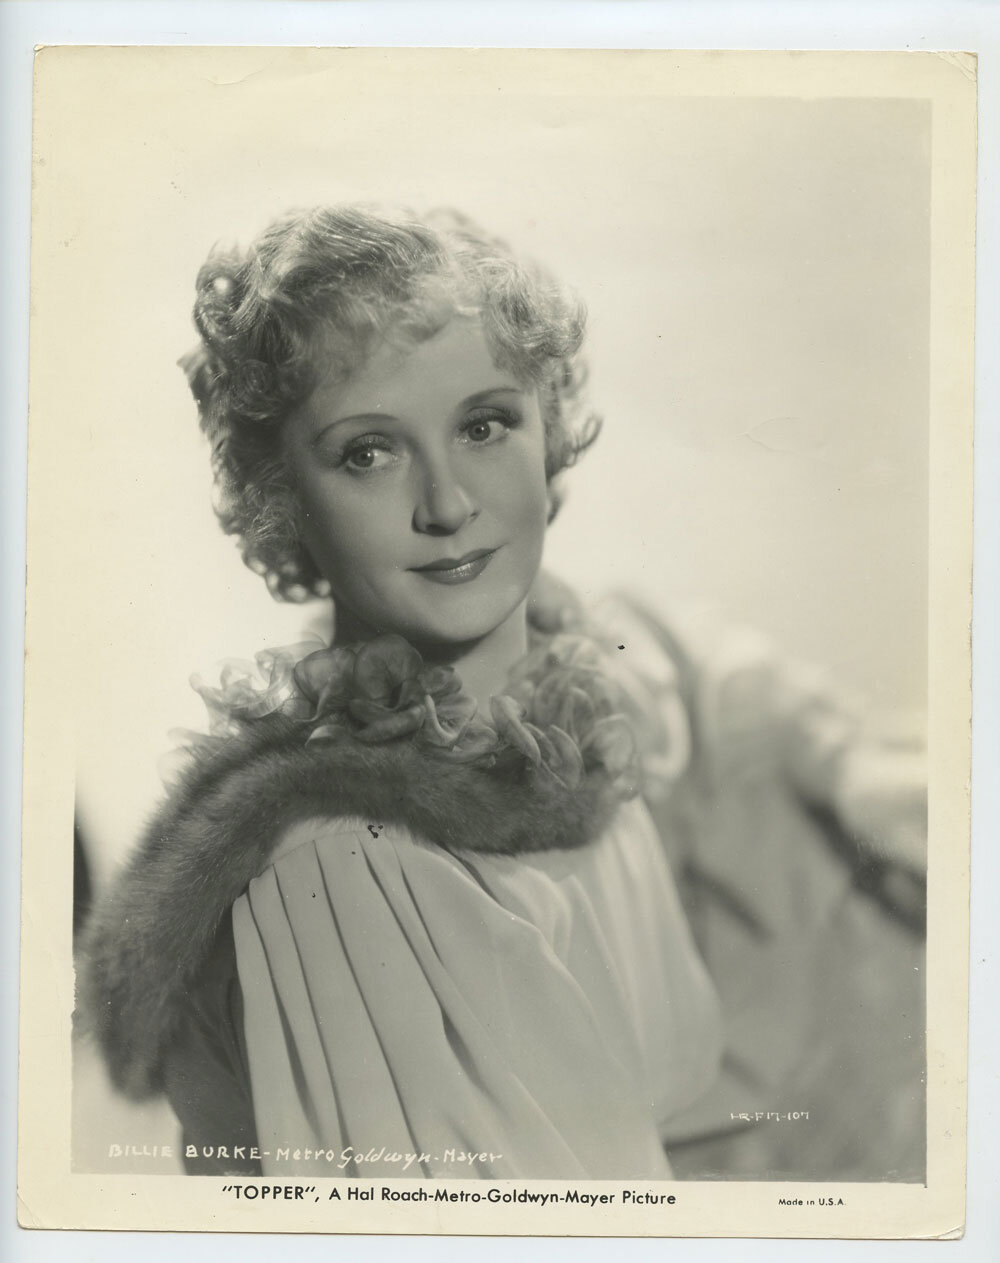 Billie Burke Photo 1937 Topper